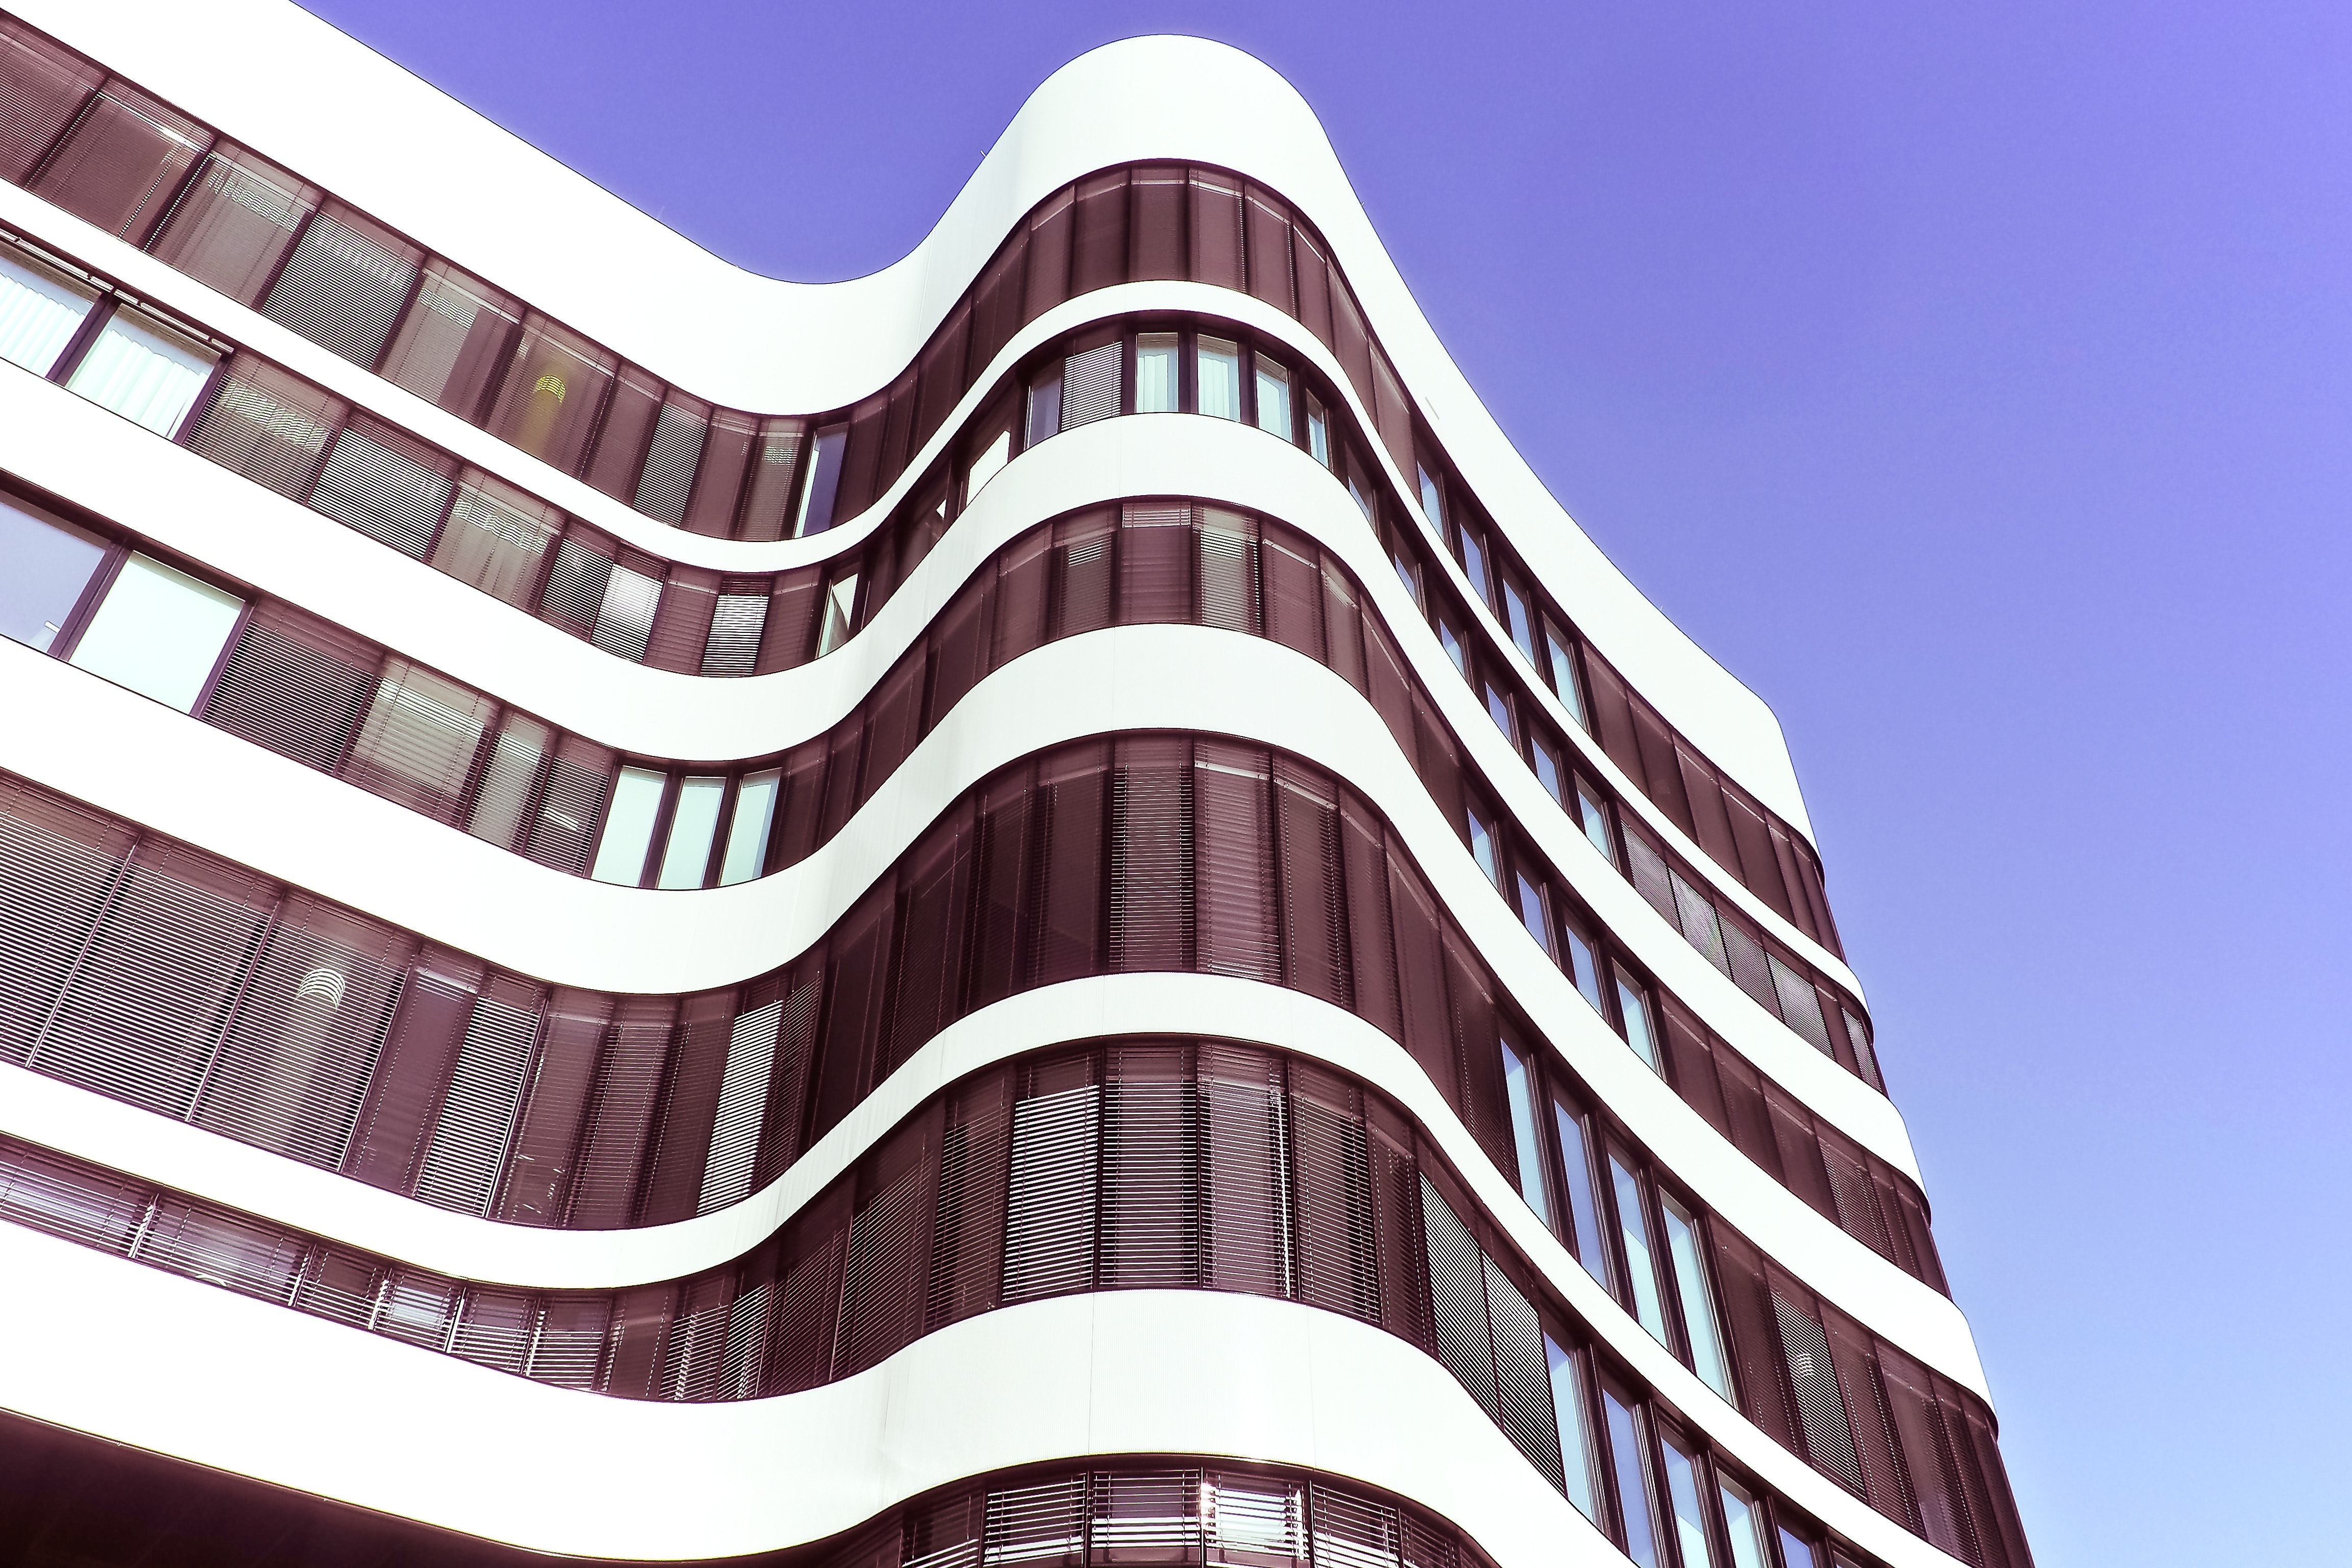 Low angle photography of high rise building free stock photo for Design architettura